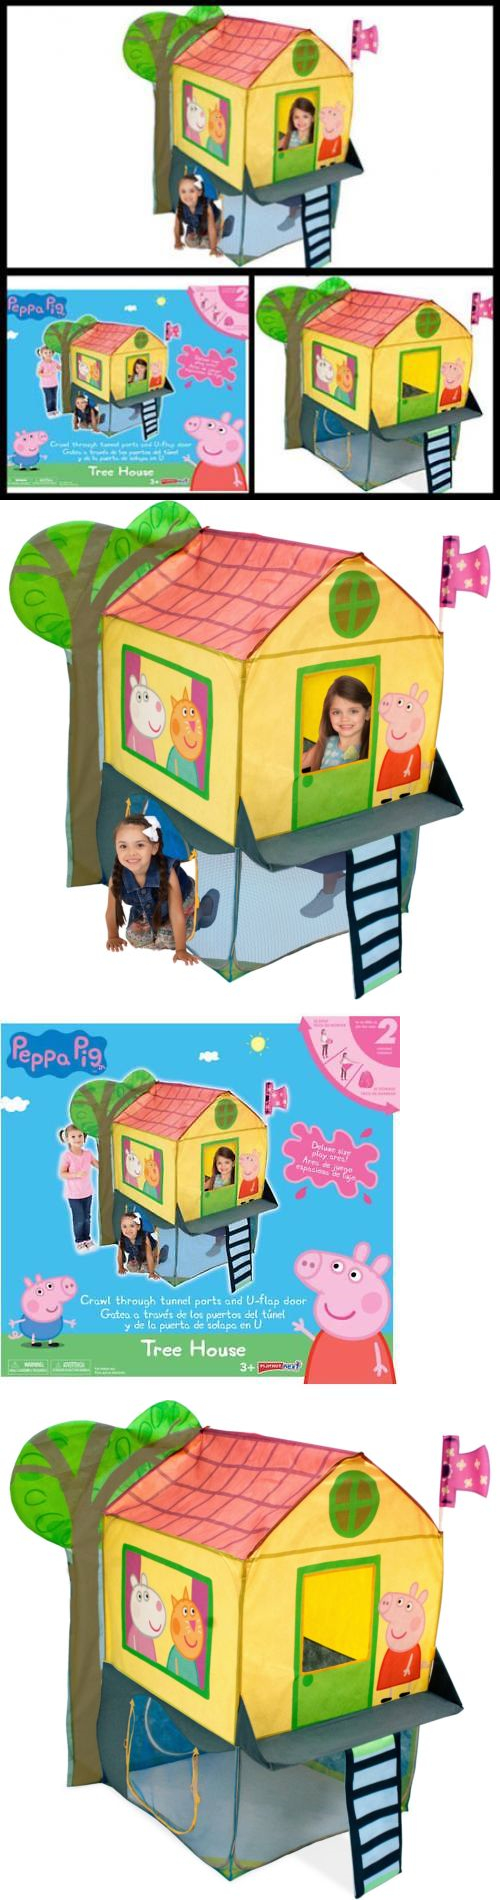 Play Tents 145997 Peppa Pig Tree House Kids Pretend Play Playhouses Indoor Outdoor Toy Tent  sc 1 st  Pinterest & Play Tents 145997: Peppa Pig Tree House Kids Pretend Play ...